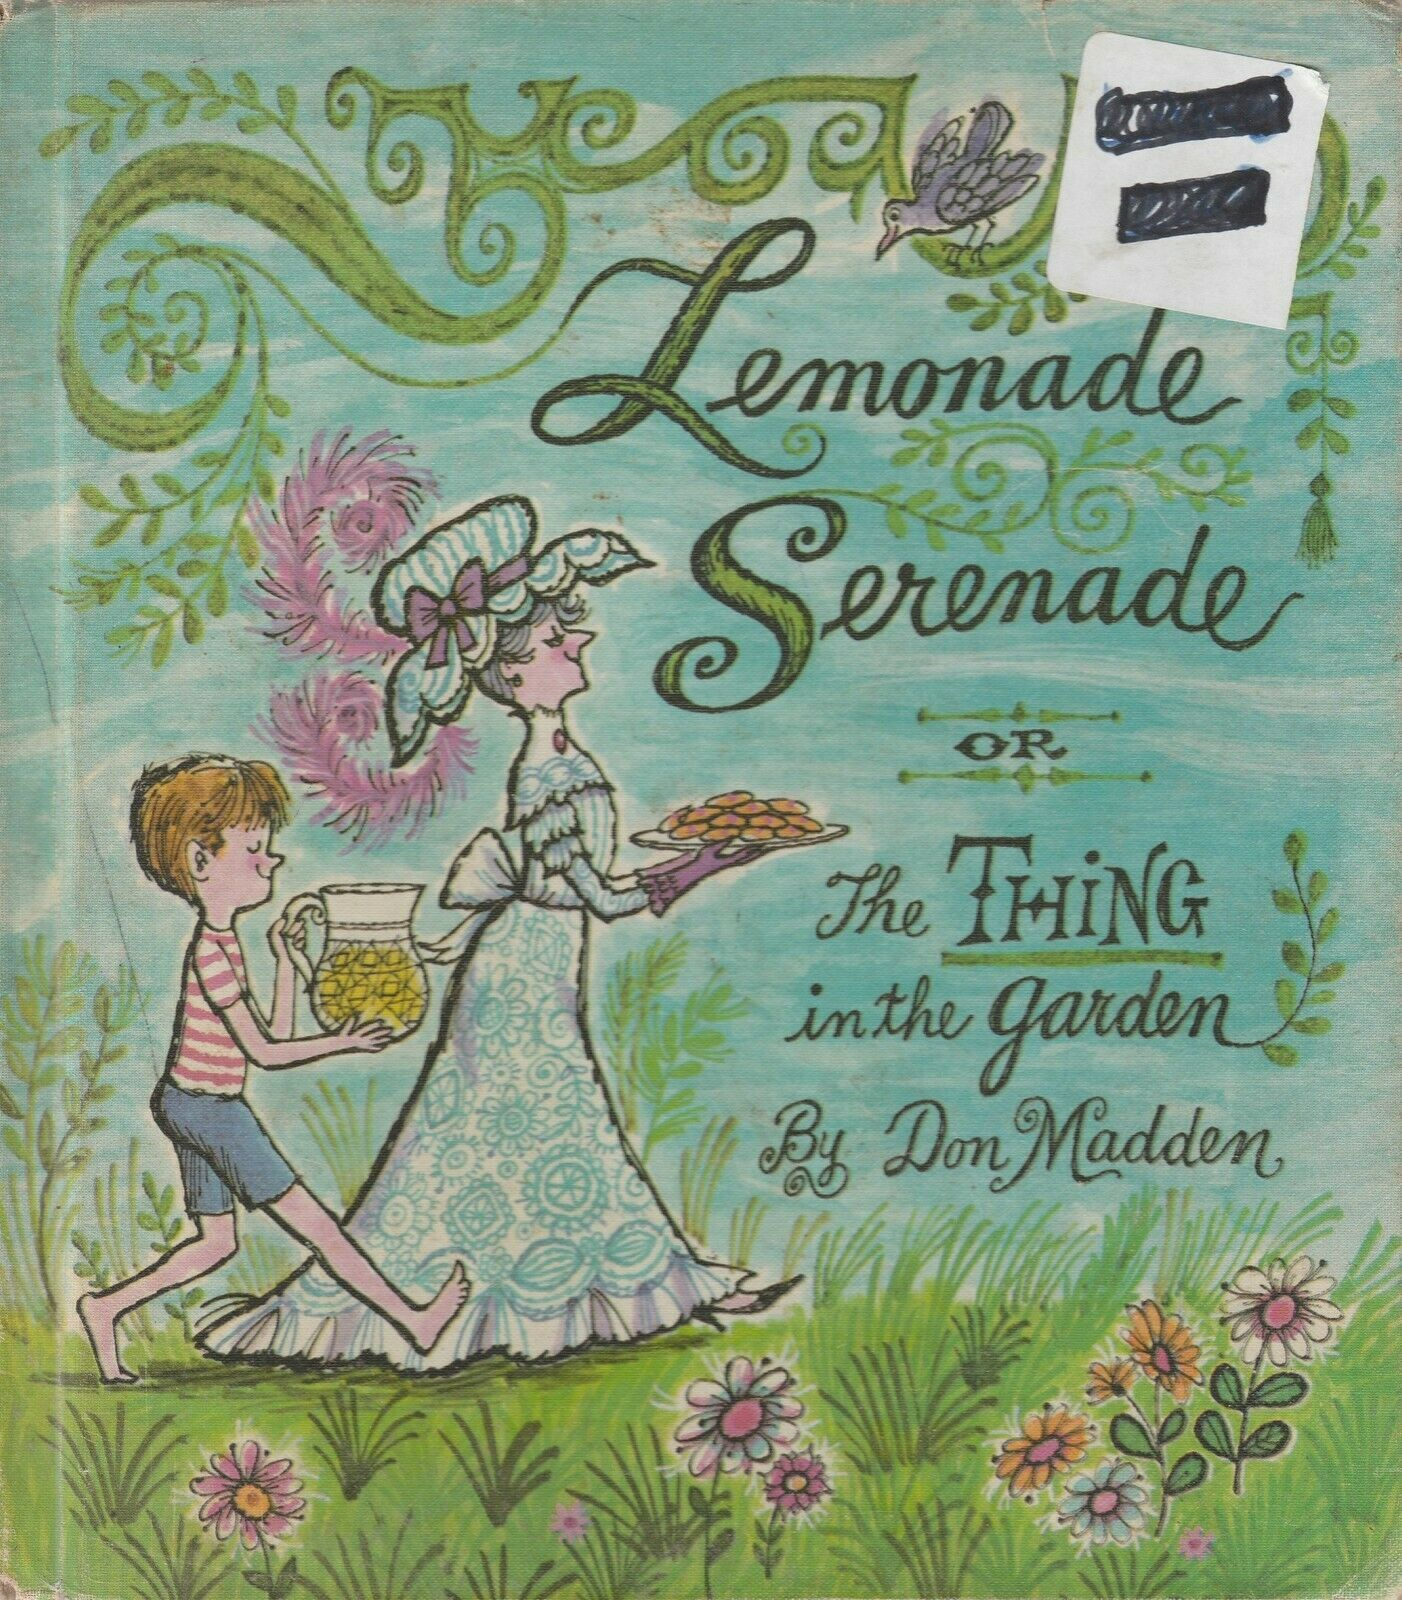 Lemonade Serenade or The Thing in the Garden by Don Madden 1966 Vintage Book